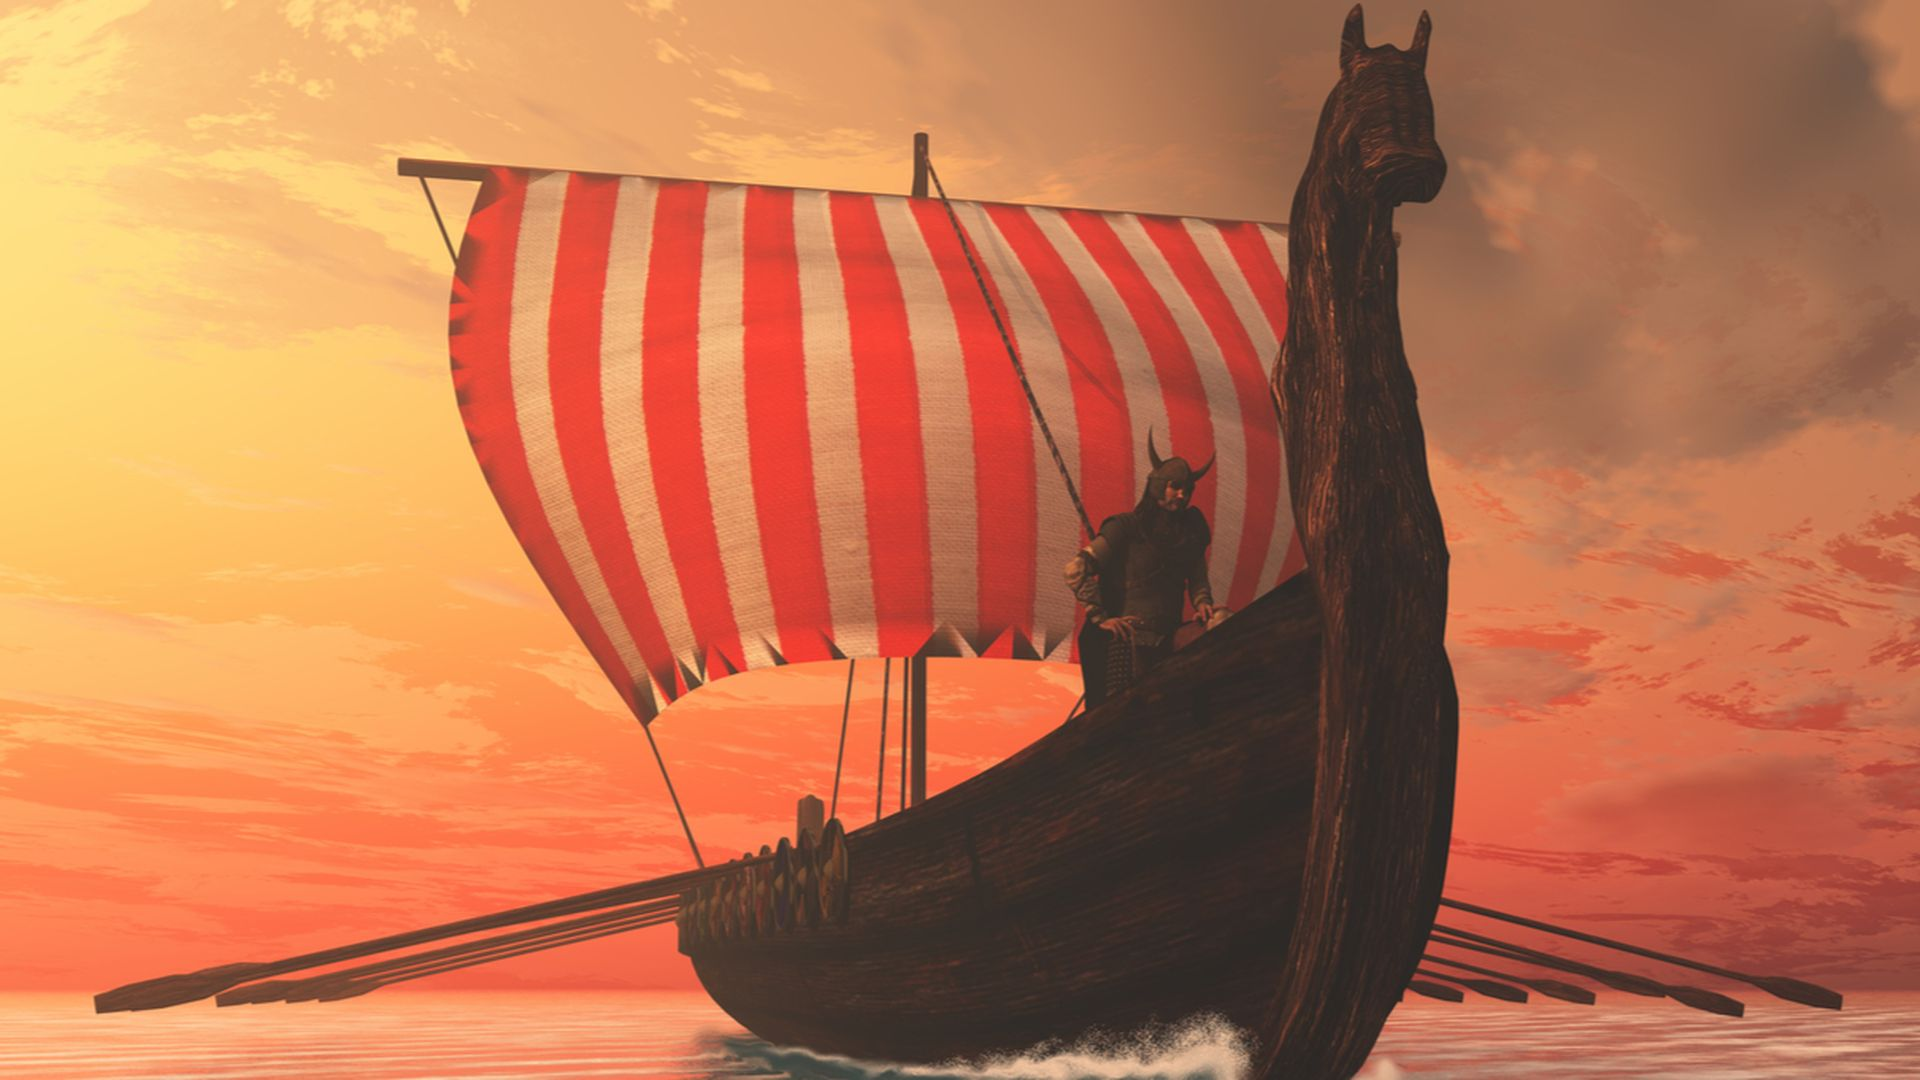 Howstuffworks: What's Your Old Norse Name?